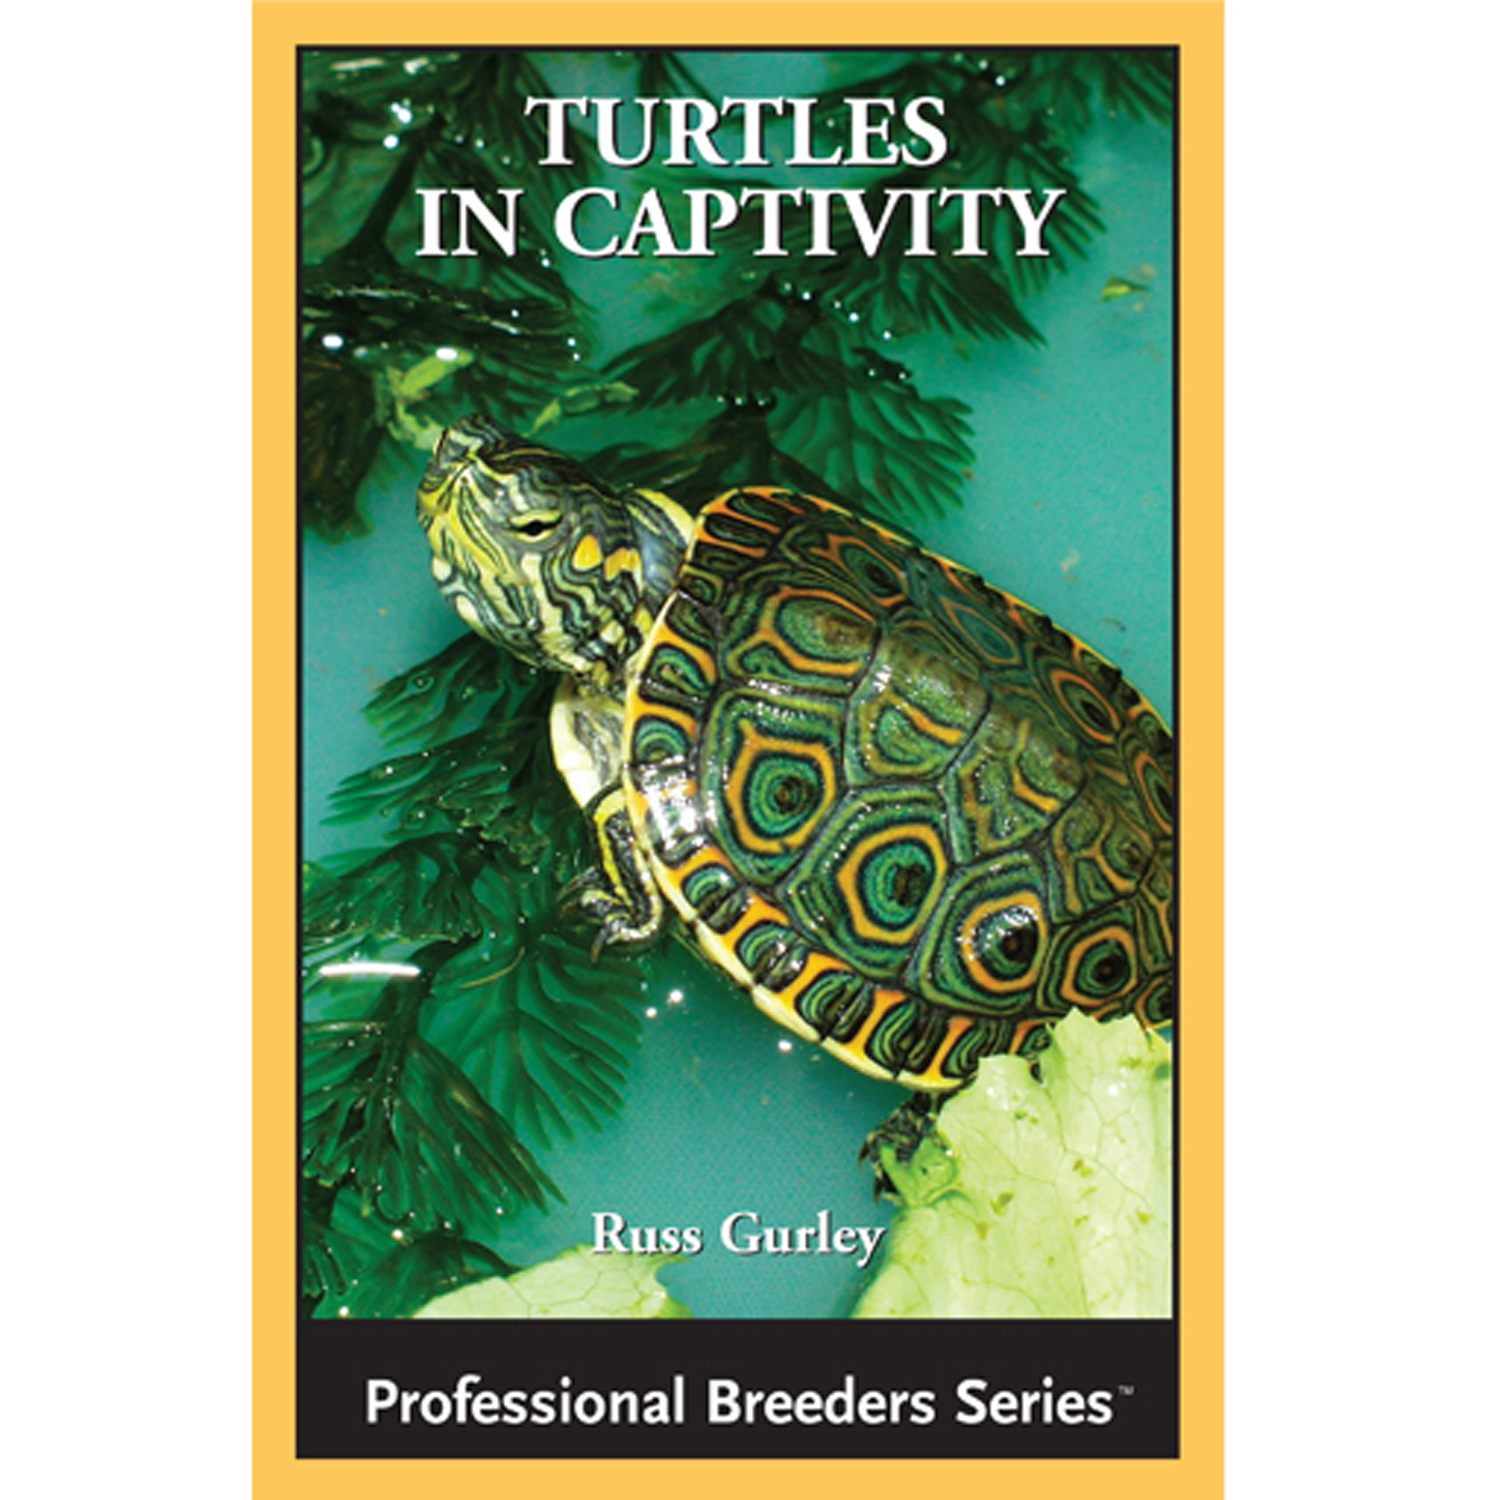 Turtles in Captivity